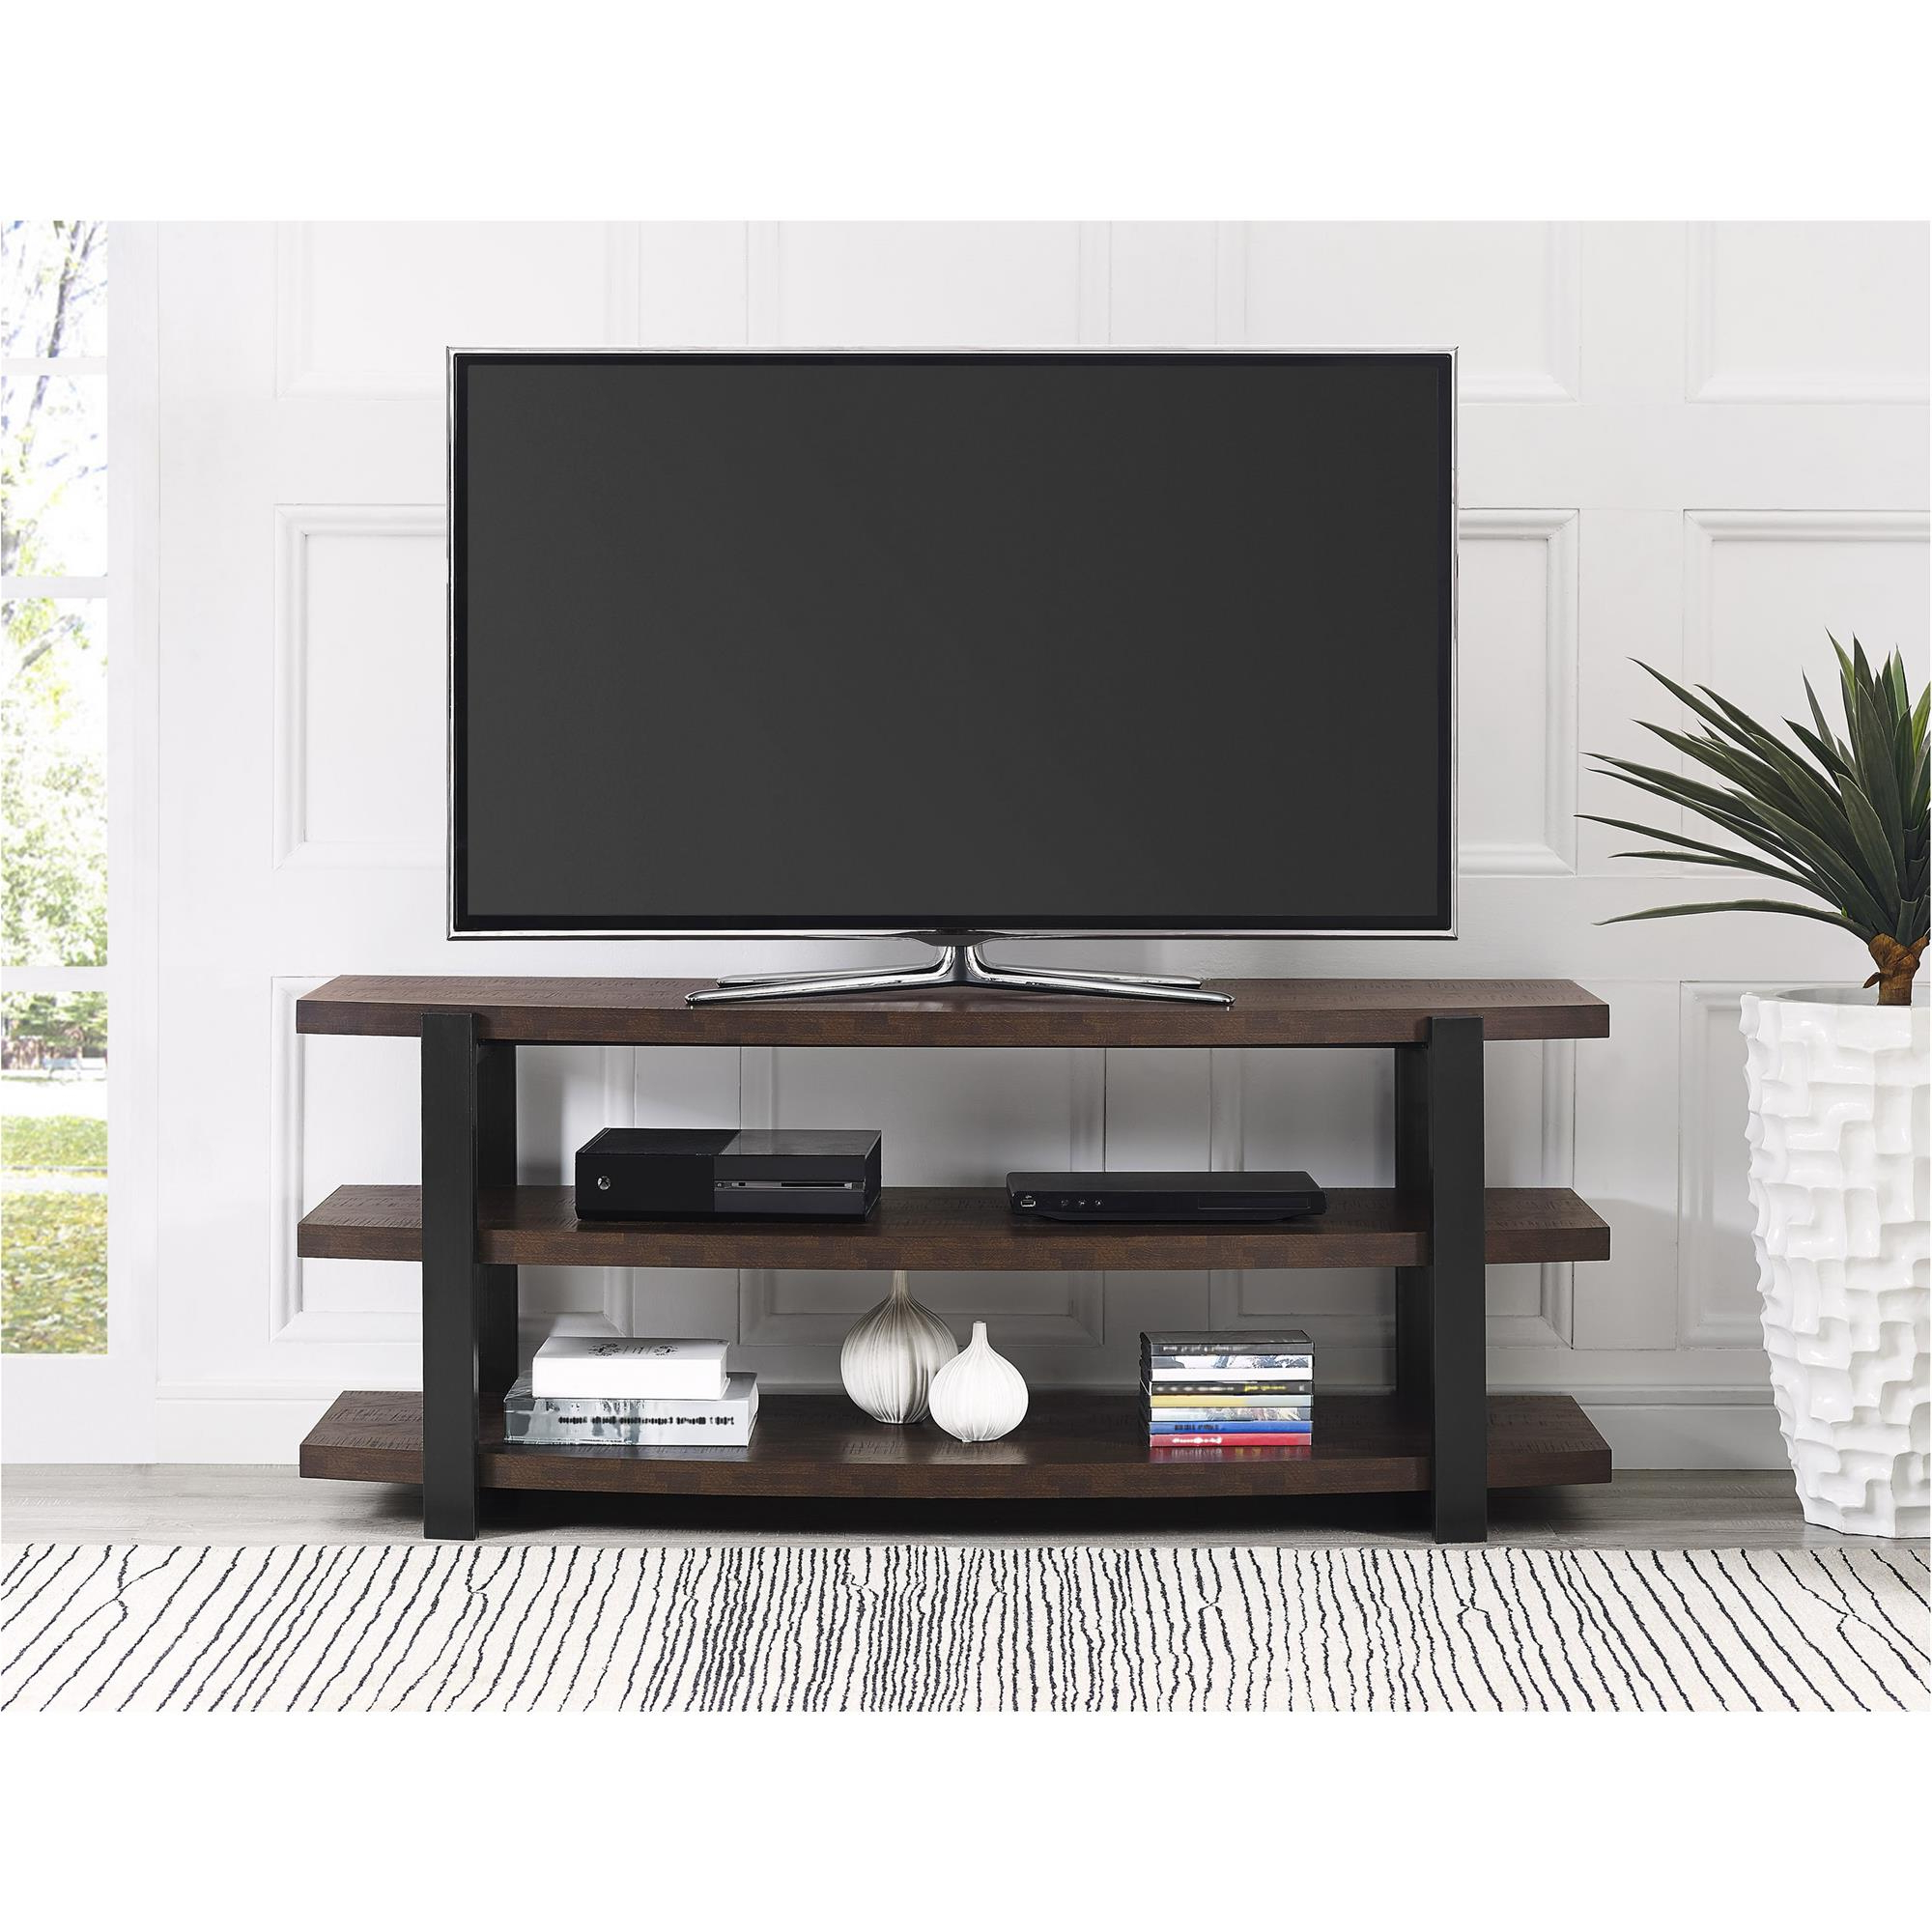 """Ameriwood Home Garon Tv Stand For Tvs Up To 70"""", Multiple Inside Kinsella Tv Stands For Tvs Up To 70"""" (View 10 of 20)"""